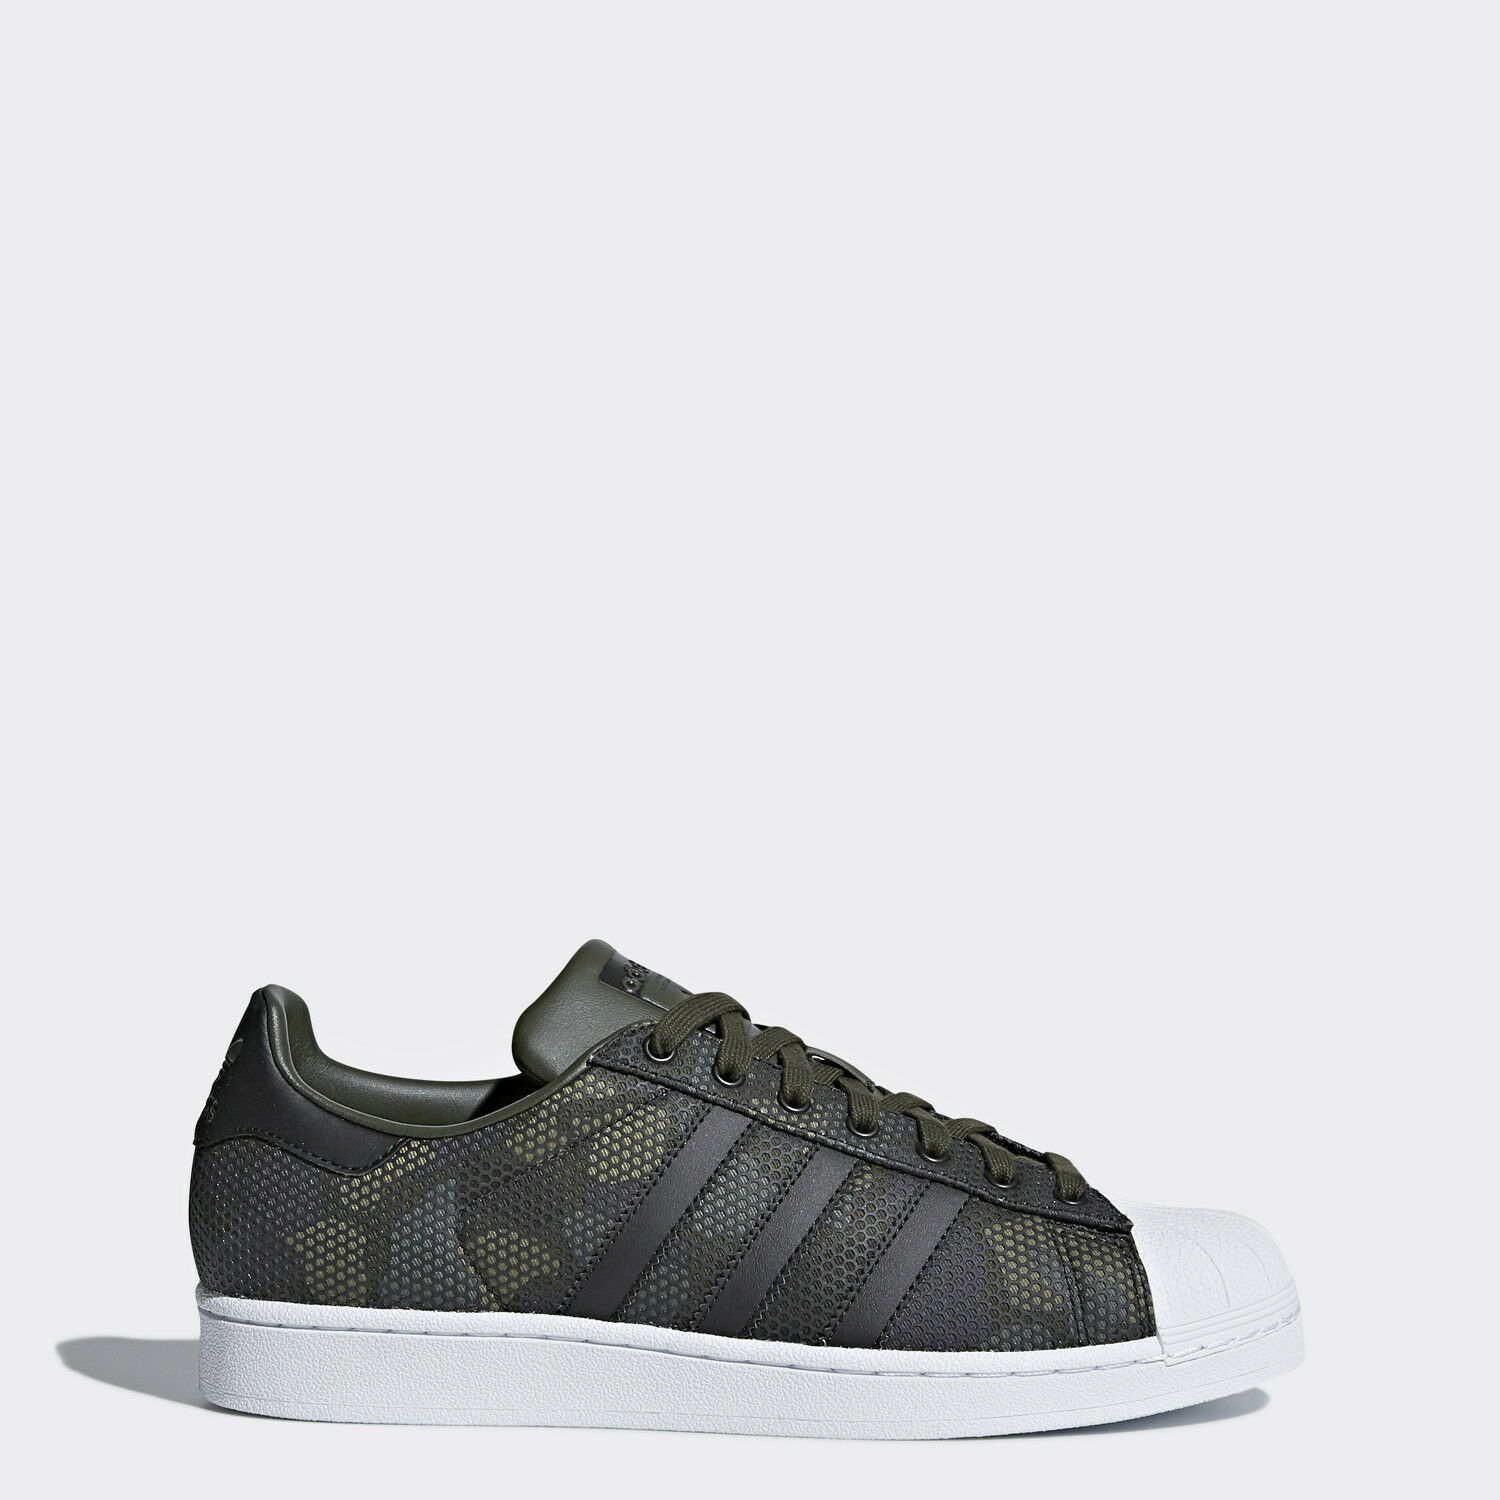 Men Style shoes  ADIDAS SUPERSTAR  CAMO  CM8071  LIMITED QUANTITY